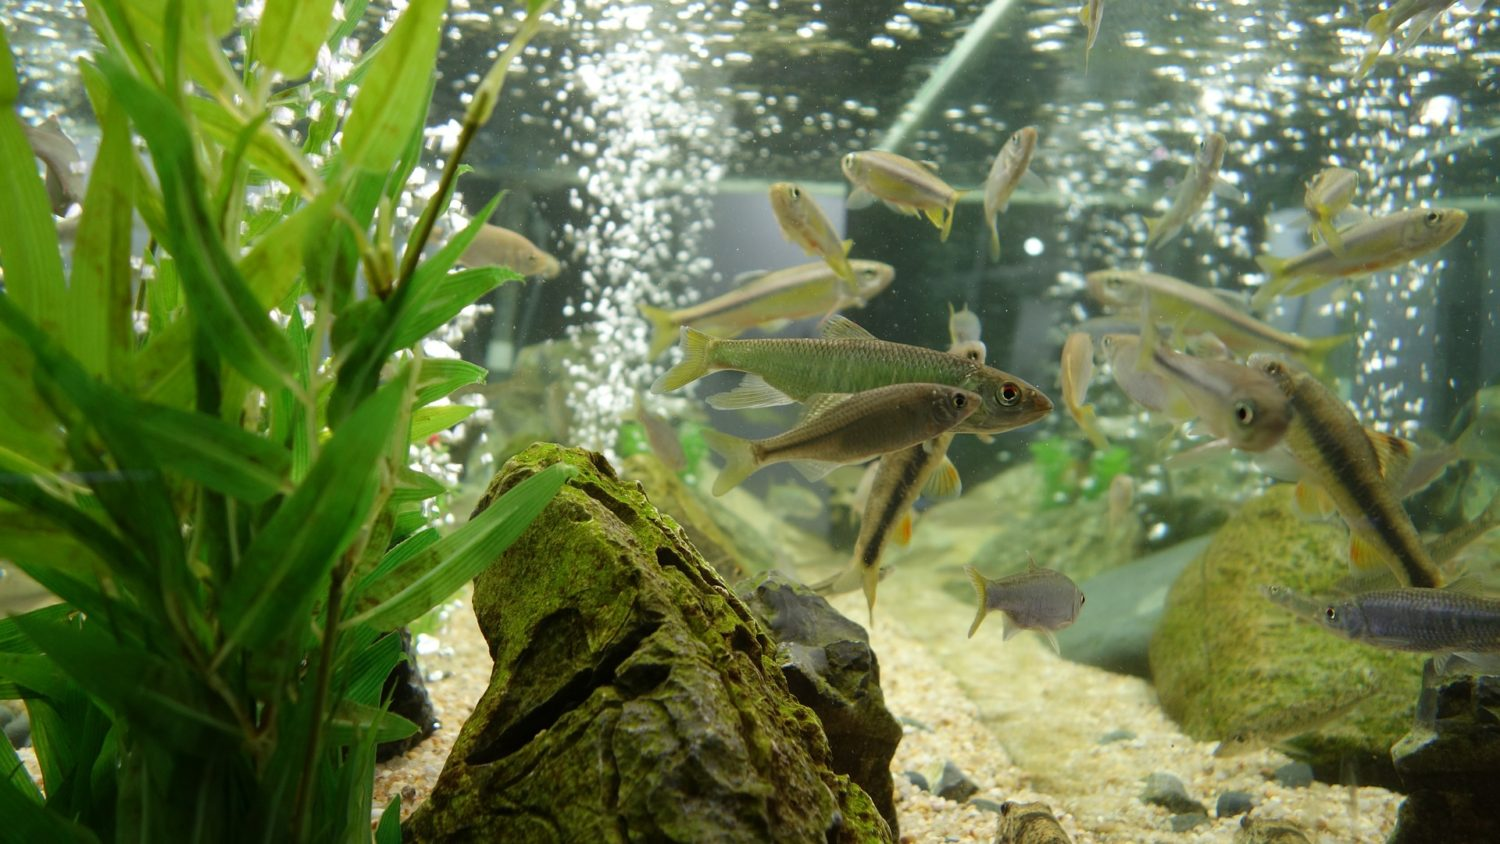 Small silver fish swimming in a fish tank filled with rocks and plants and bubbles.